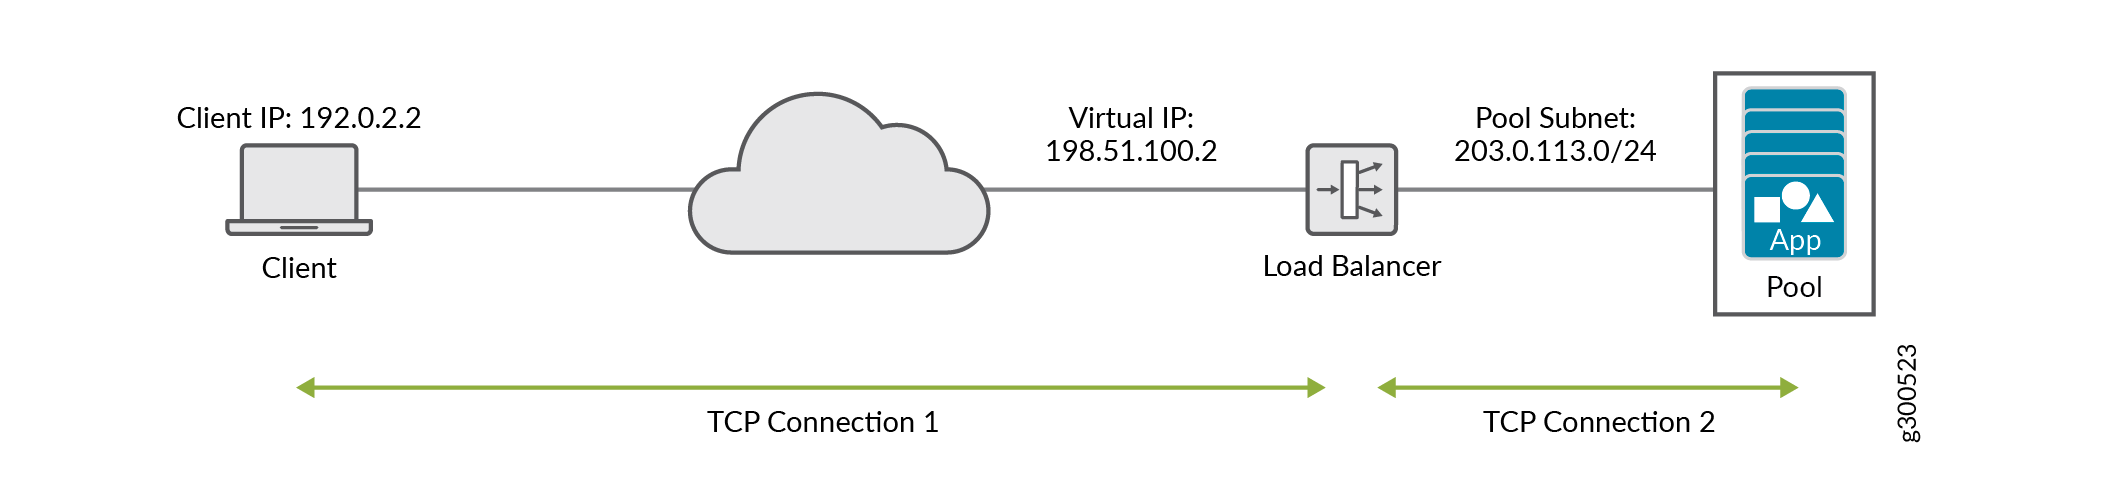 Configuring Load Balancing as a Service in Contrail